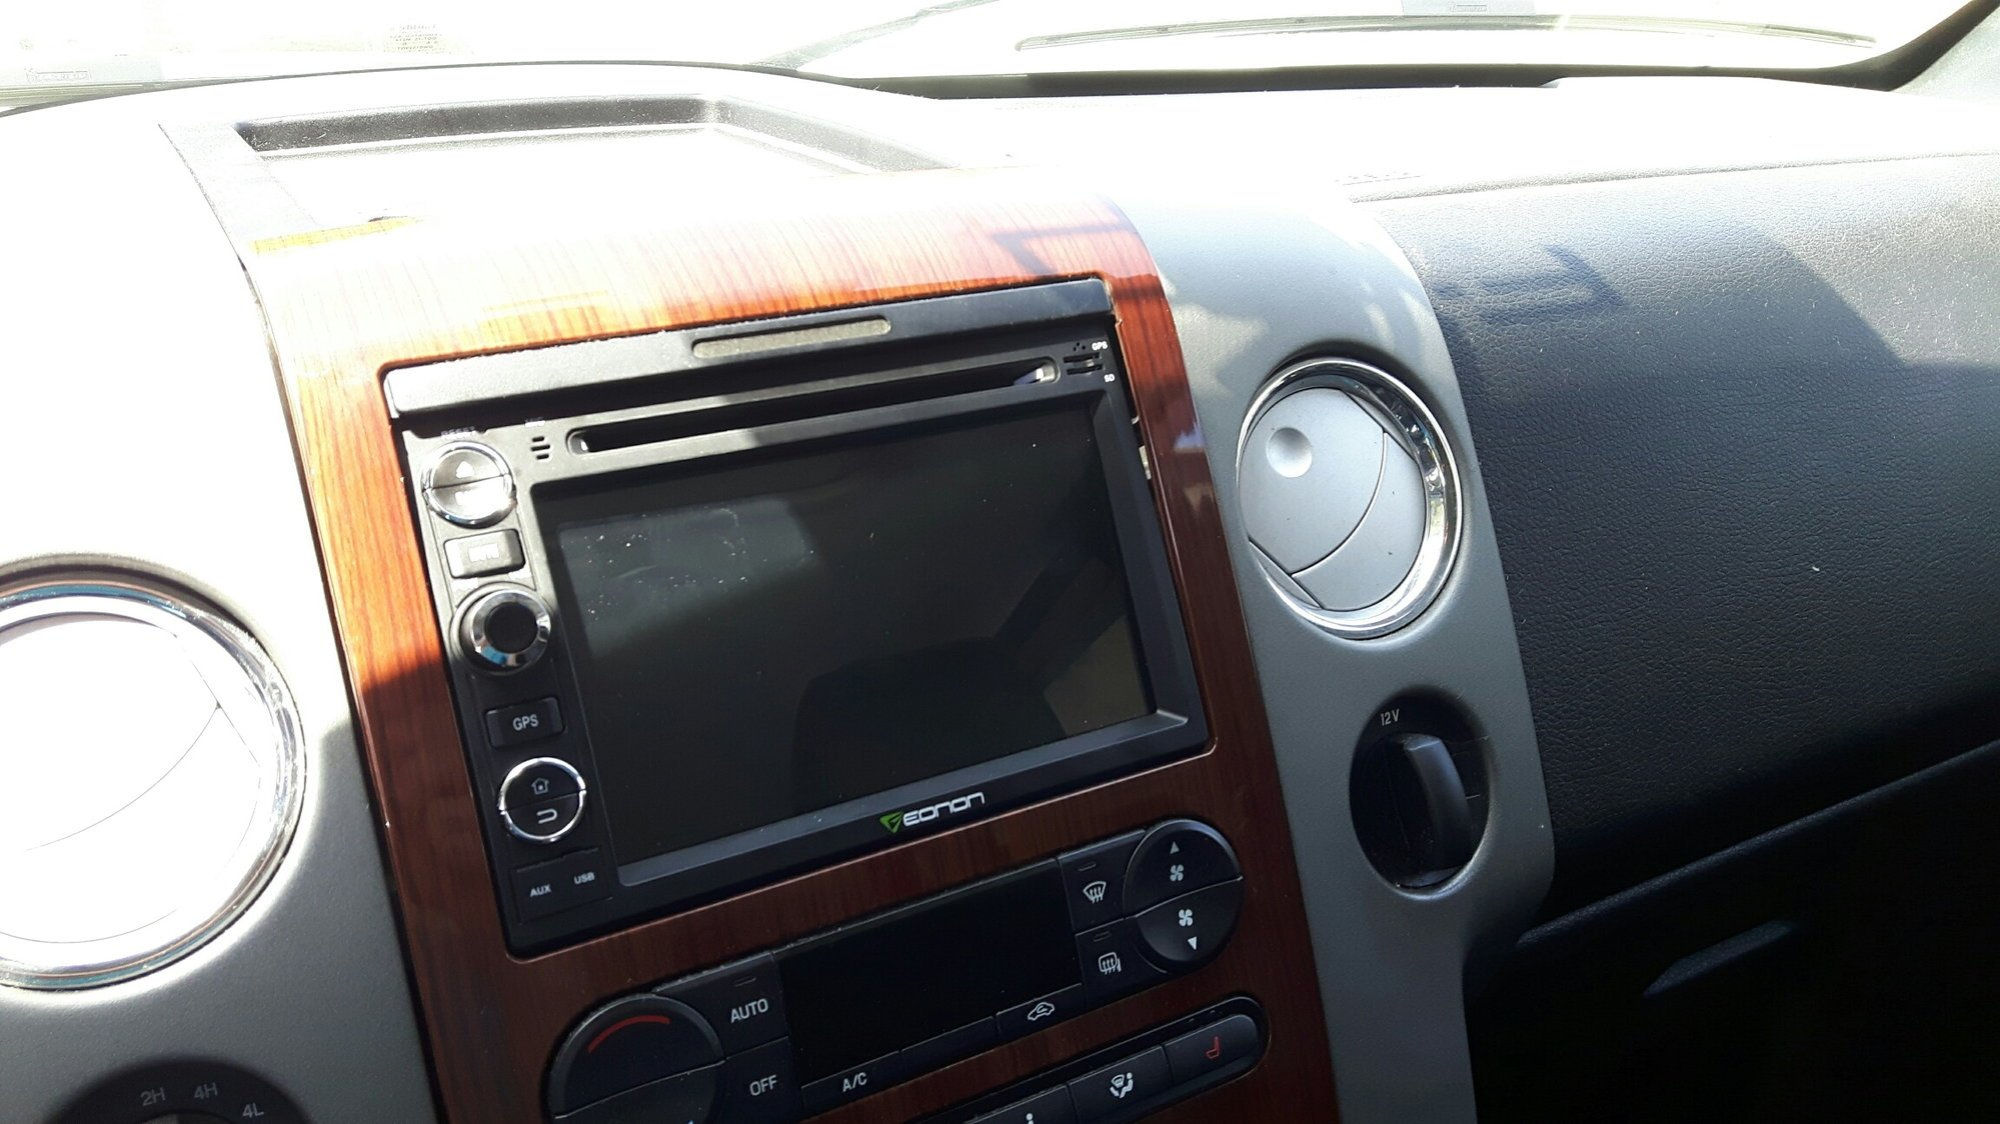 hight resolution of eonon ga7173 display installed ford f150 forum community of ford on